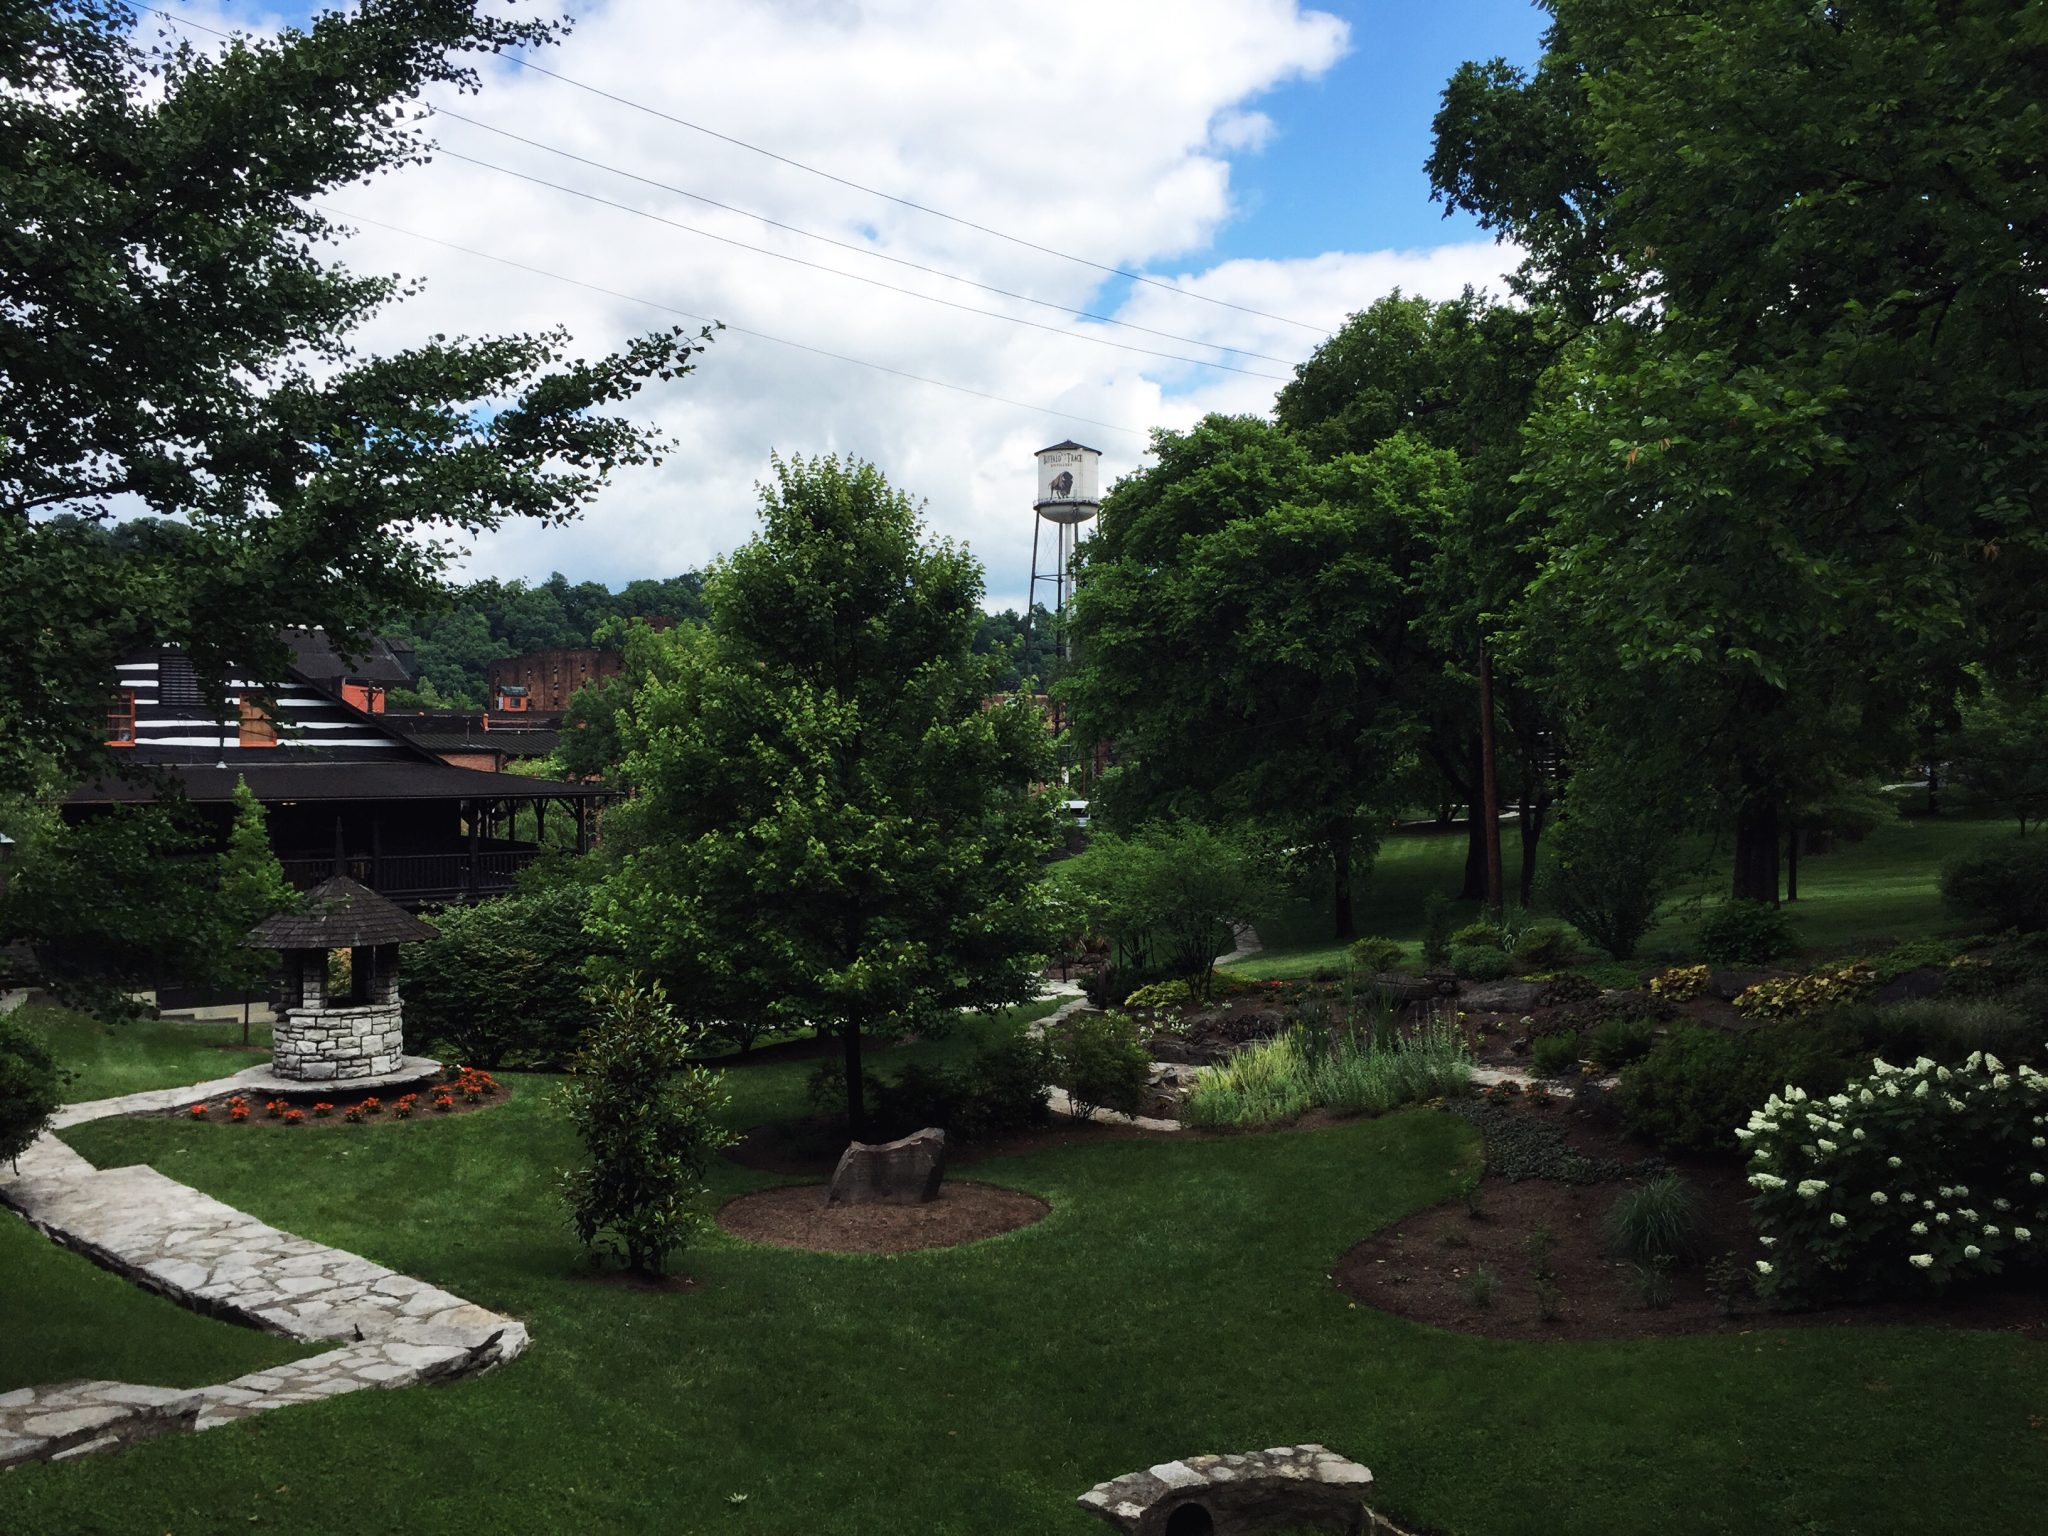 Part of the grounds at Buffalo Trace Distillery